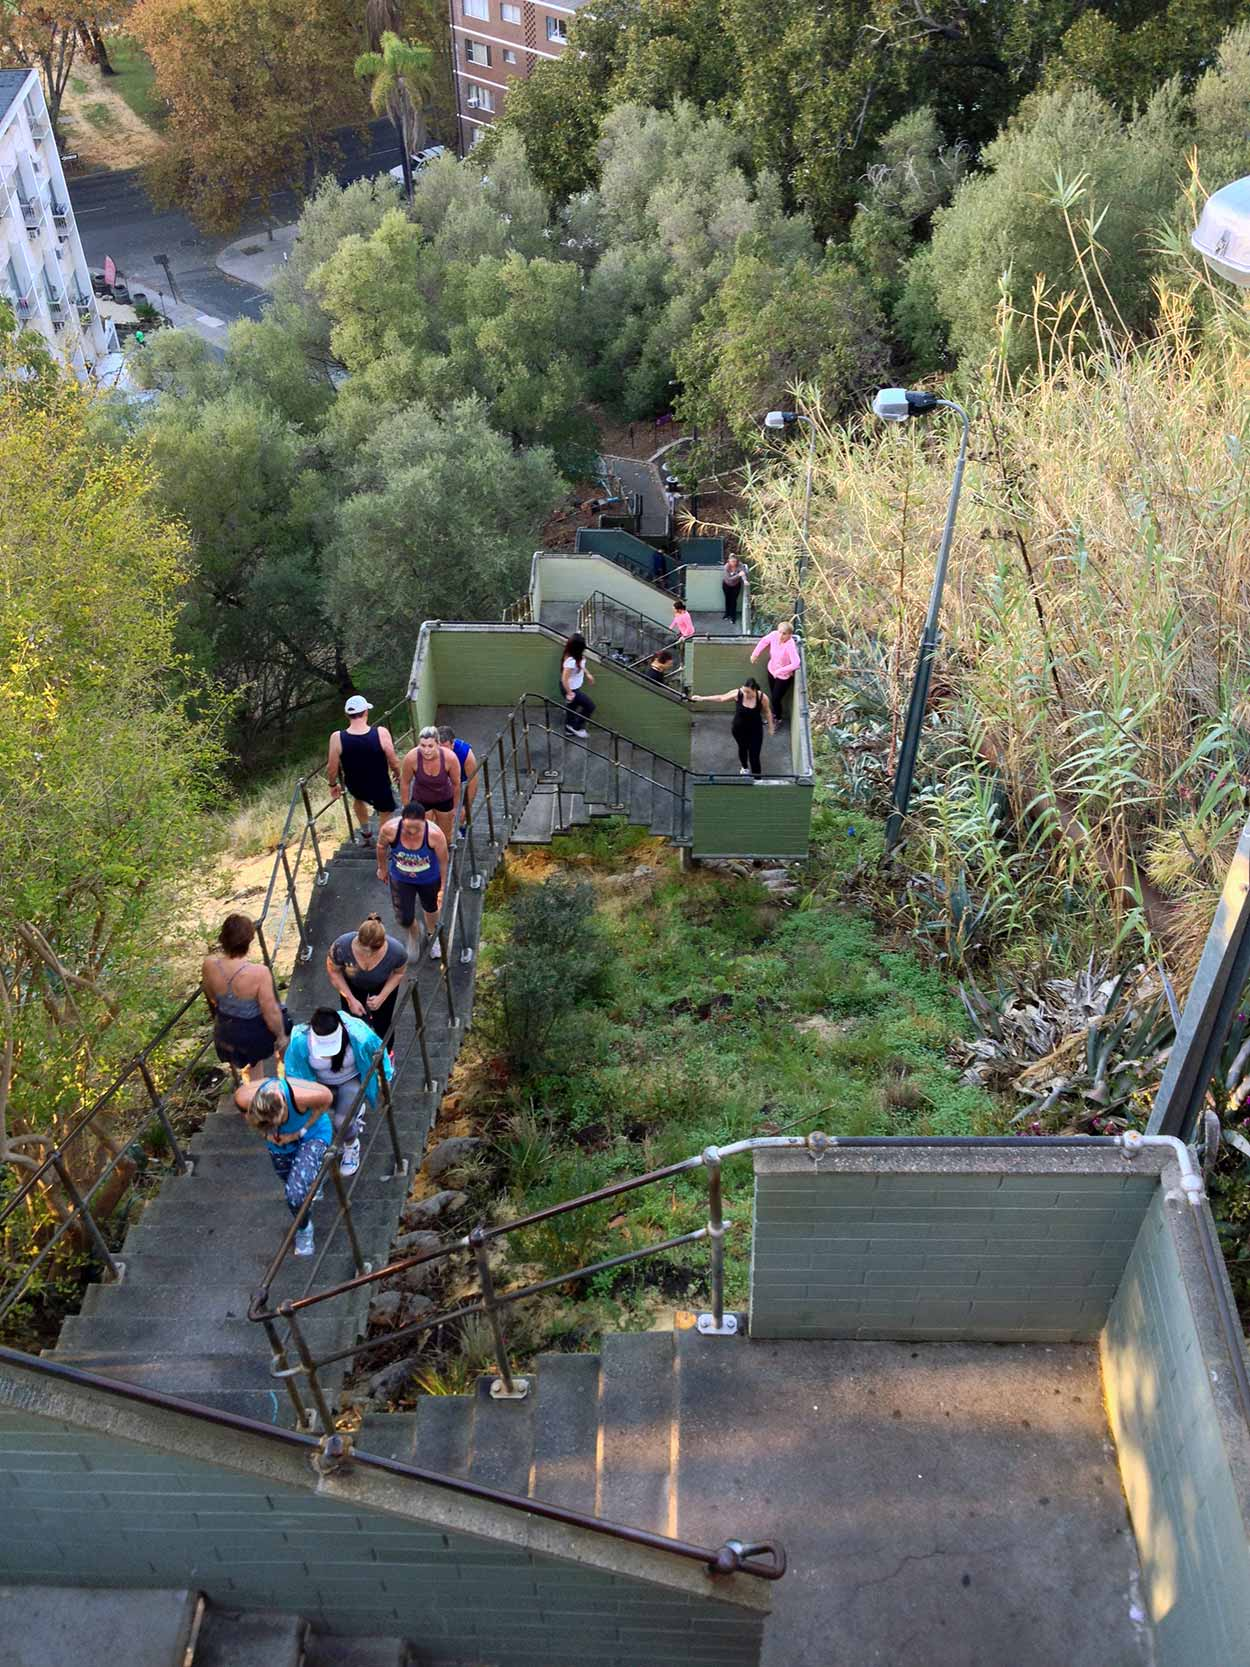 Looking down Jacobs Ladder, Perth, Western Australia